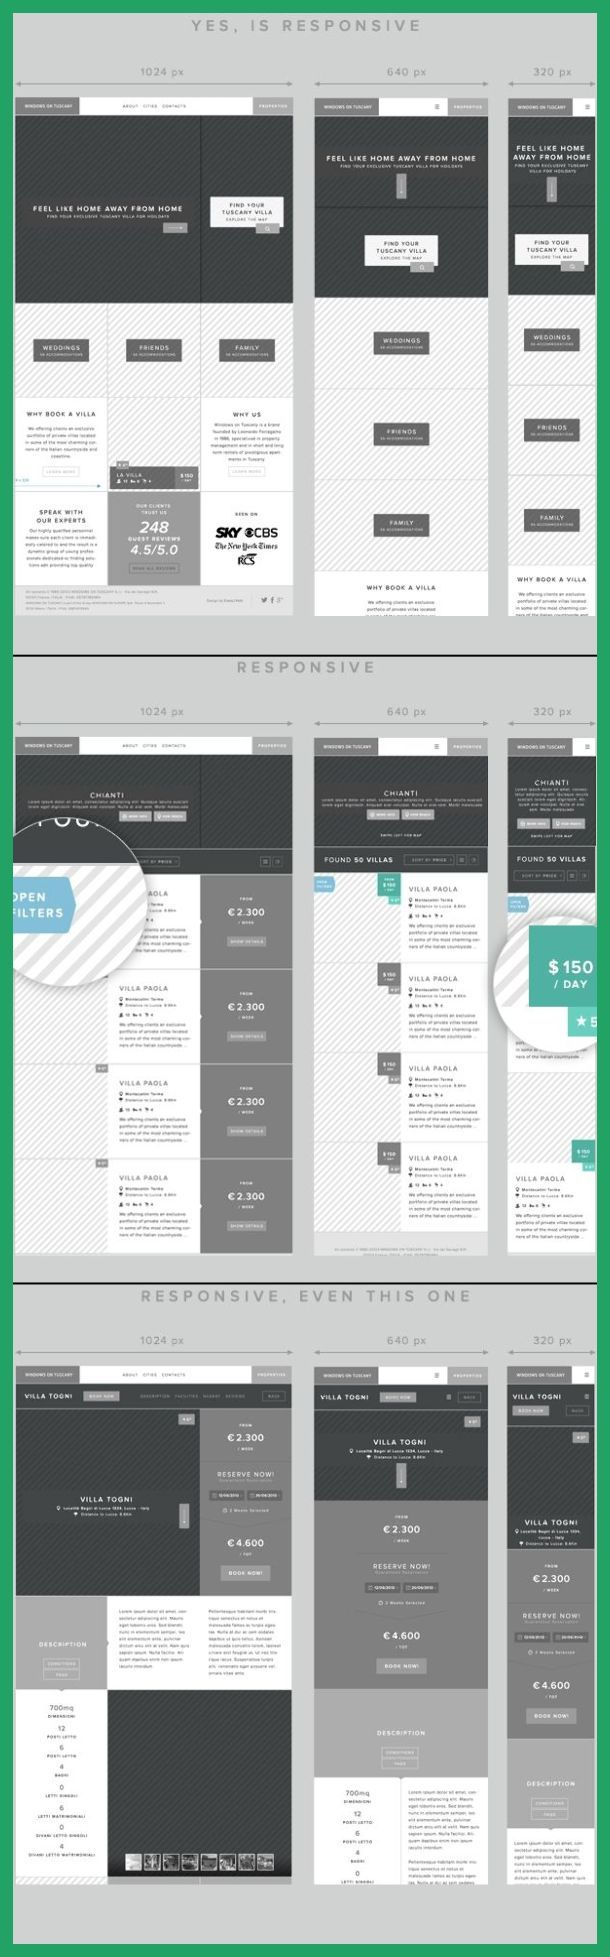 Responsive Webdesign If You Are Planning To Establish A Mobile Website Presence For Your B In 2020 Web Design Wireframe Design Web Layout Design